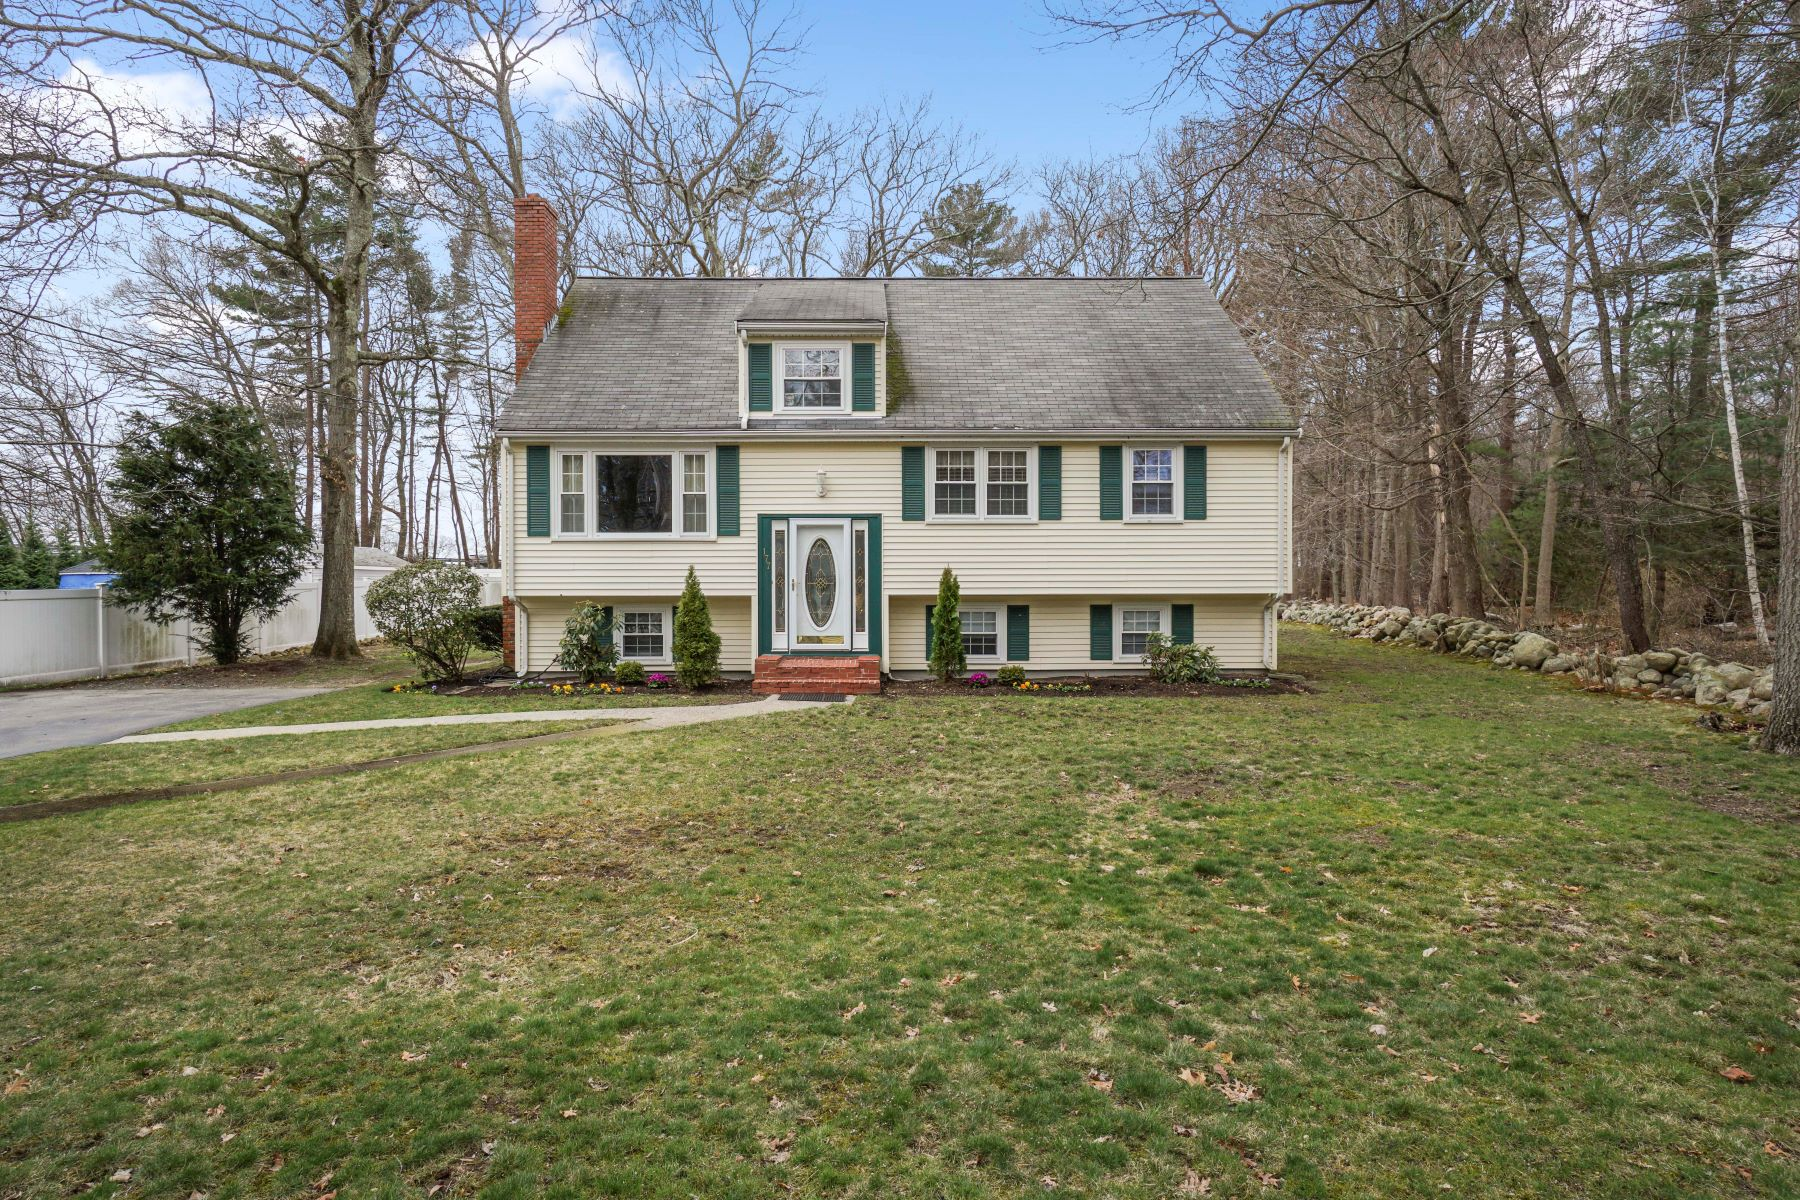 Single Family Home for Active at 177 High Street, Norwell 177 High Street Norwell, Massachusetts 02061 United States